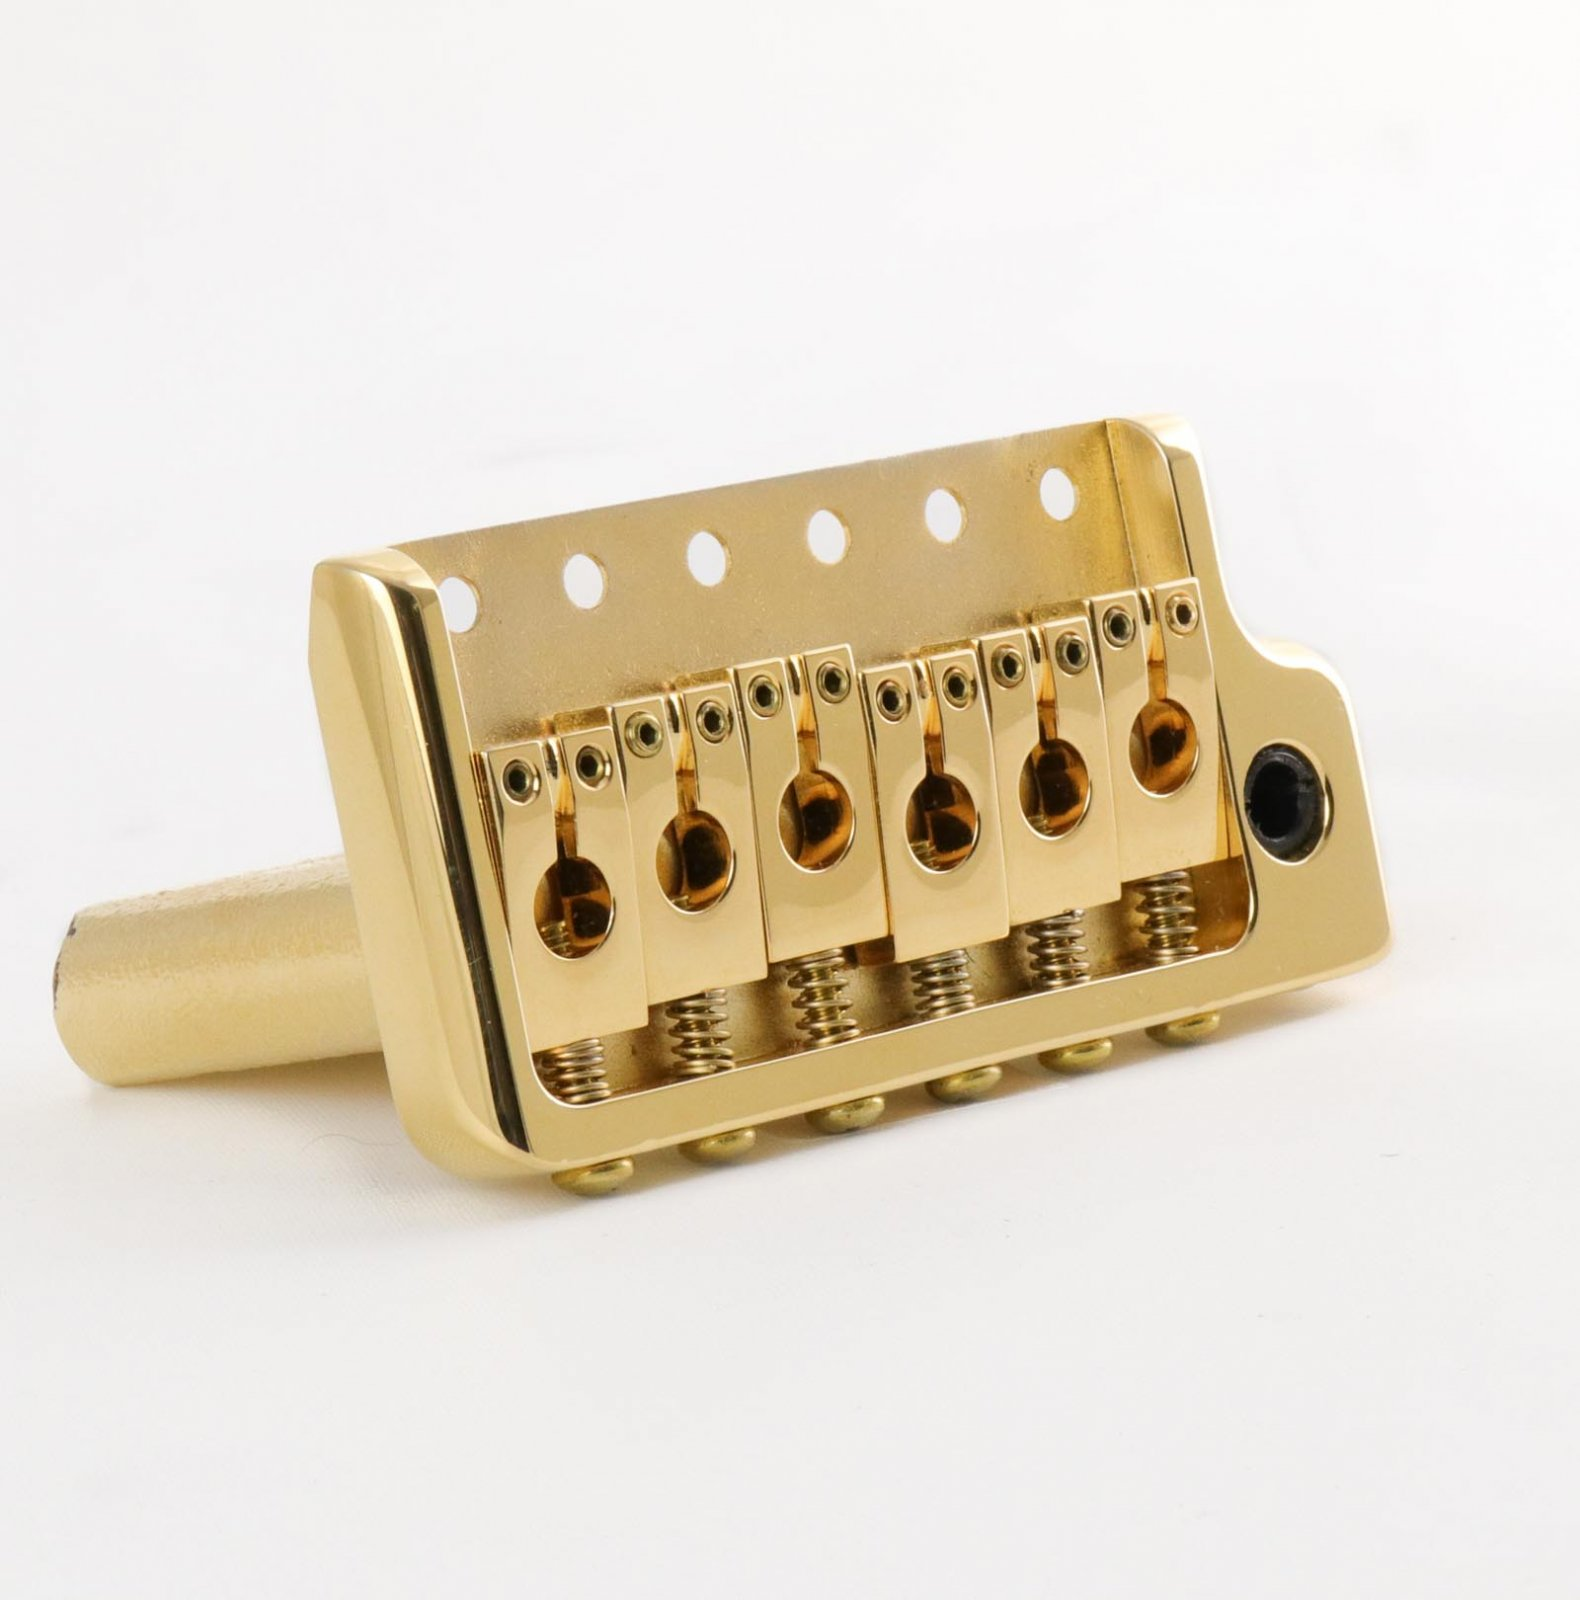 MannMade USA 2000NOS Vibrato Bridge - Raw Brass